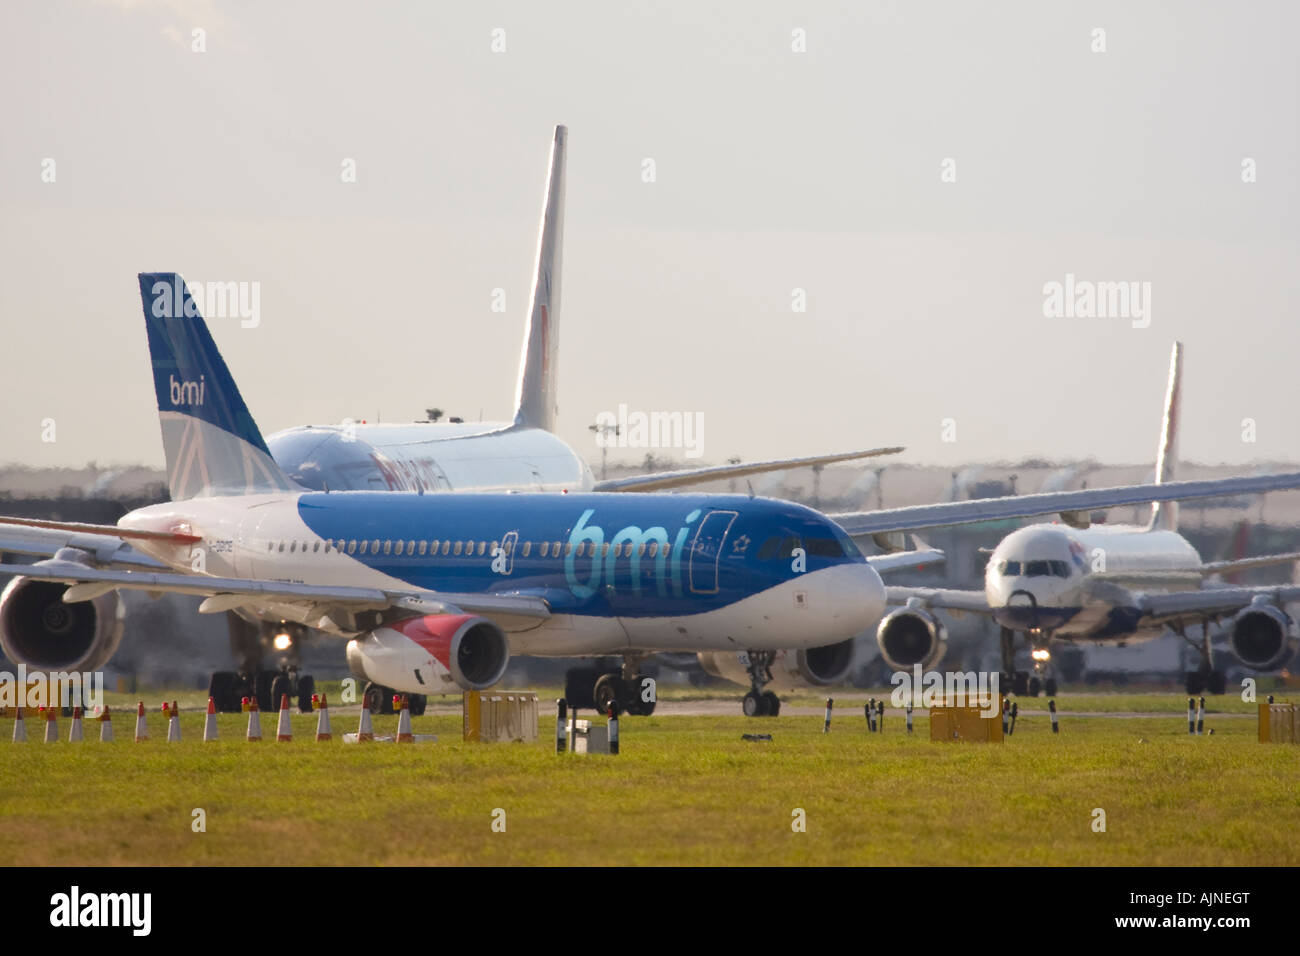 Airliners taxiing for departure at London Heathrow Airport, UK - Stock Image